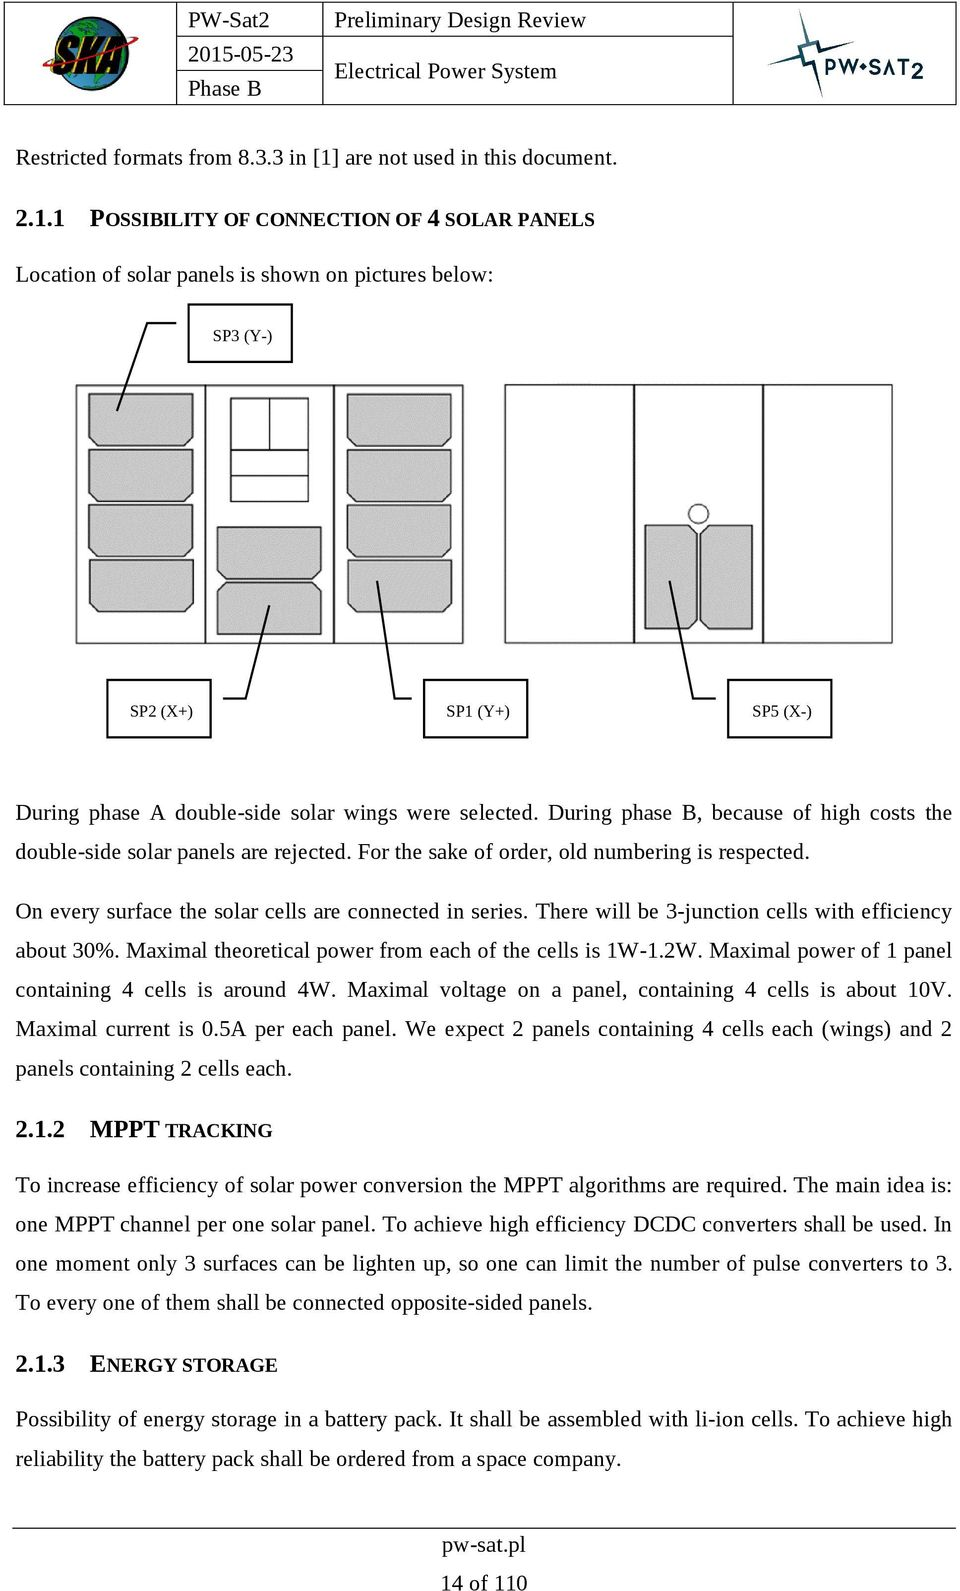 Preliminary Design Review Pdf How To Build Solar Lamp Using Pr4403 1 Possibility Of Connection 4 Panels Location Is Shown On Pictures